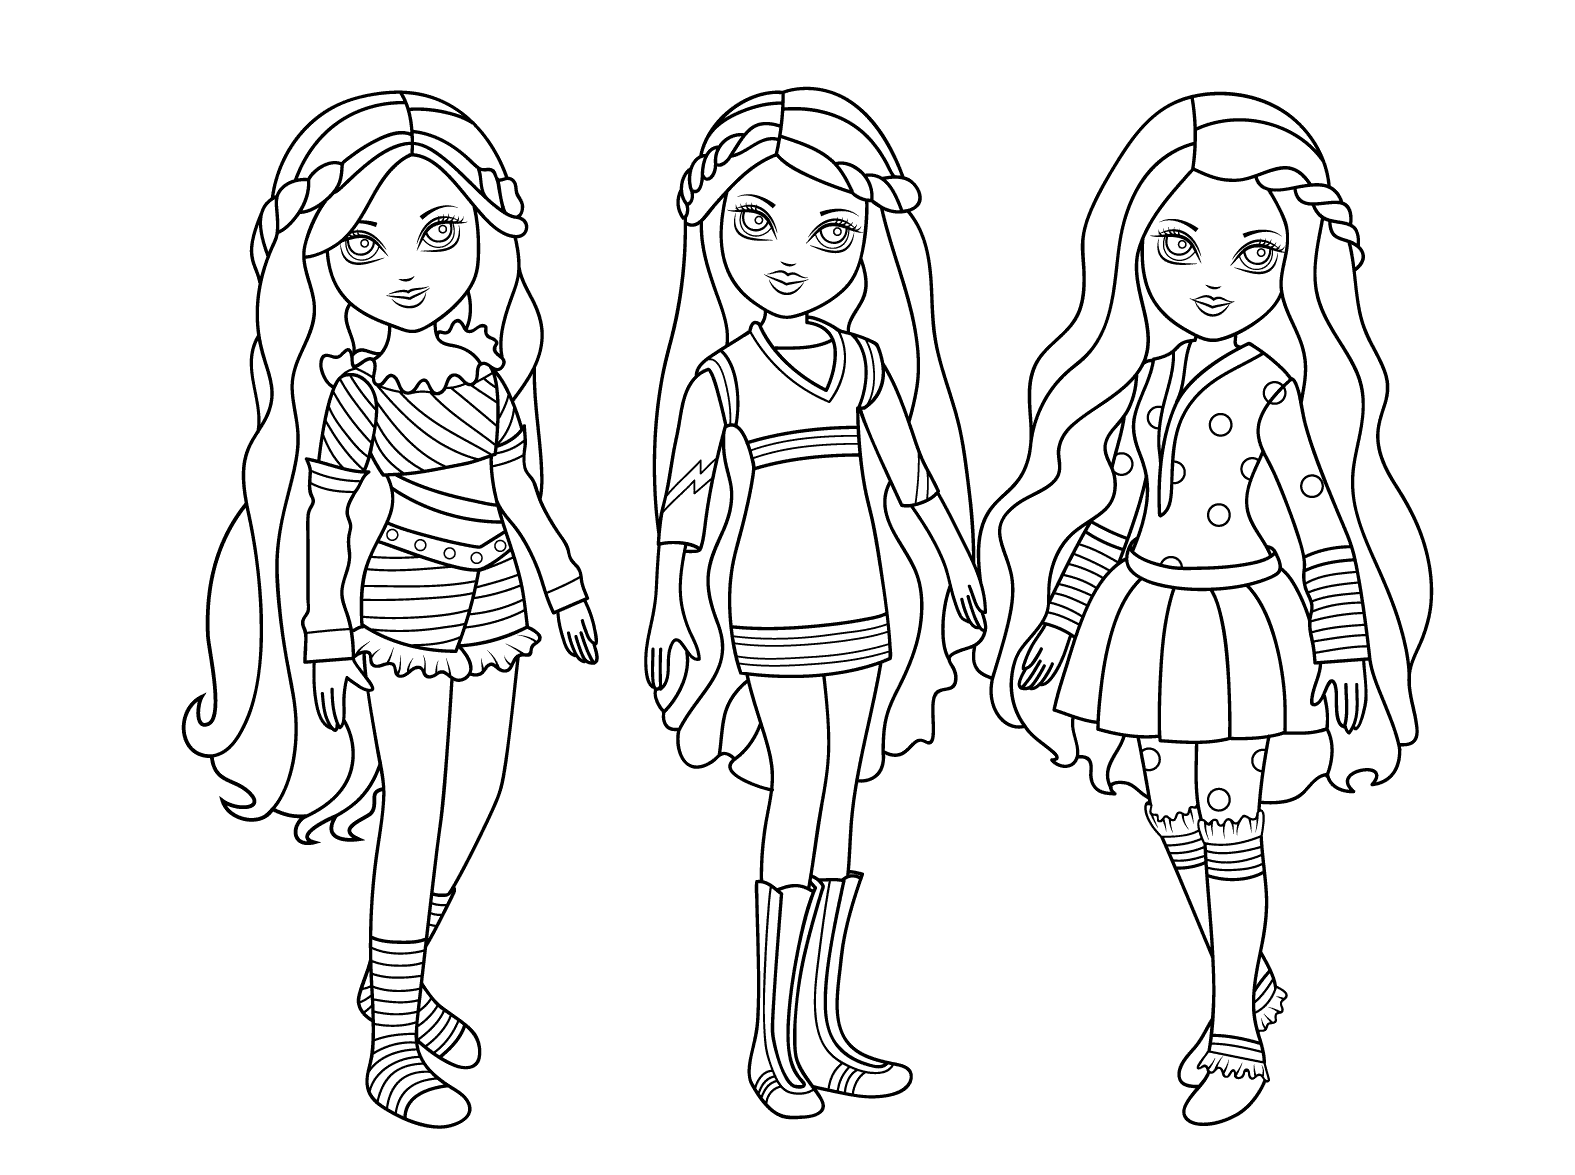 american girl doll pictures american girl doll coloring pages 4 jpg digital downloads doll american girl pictures